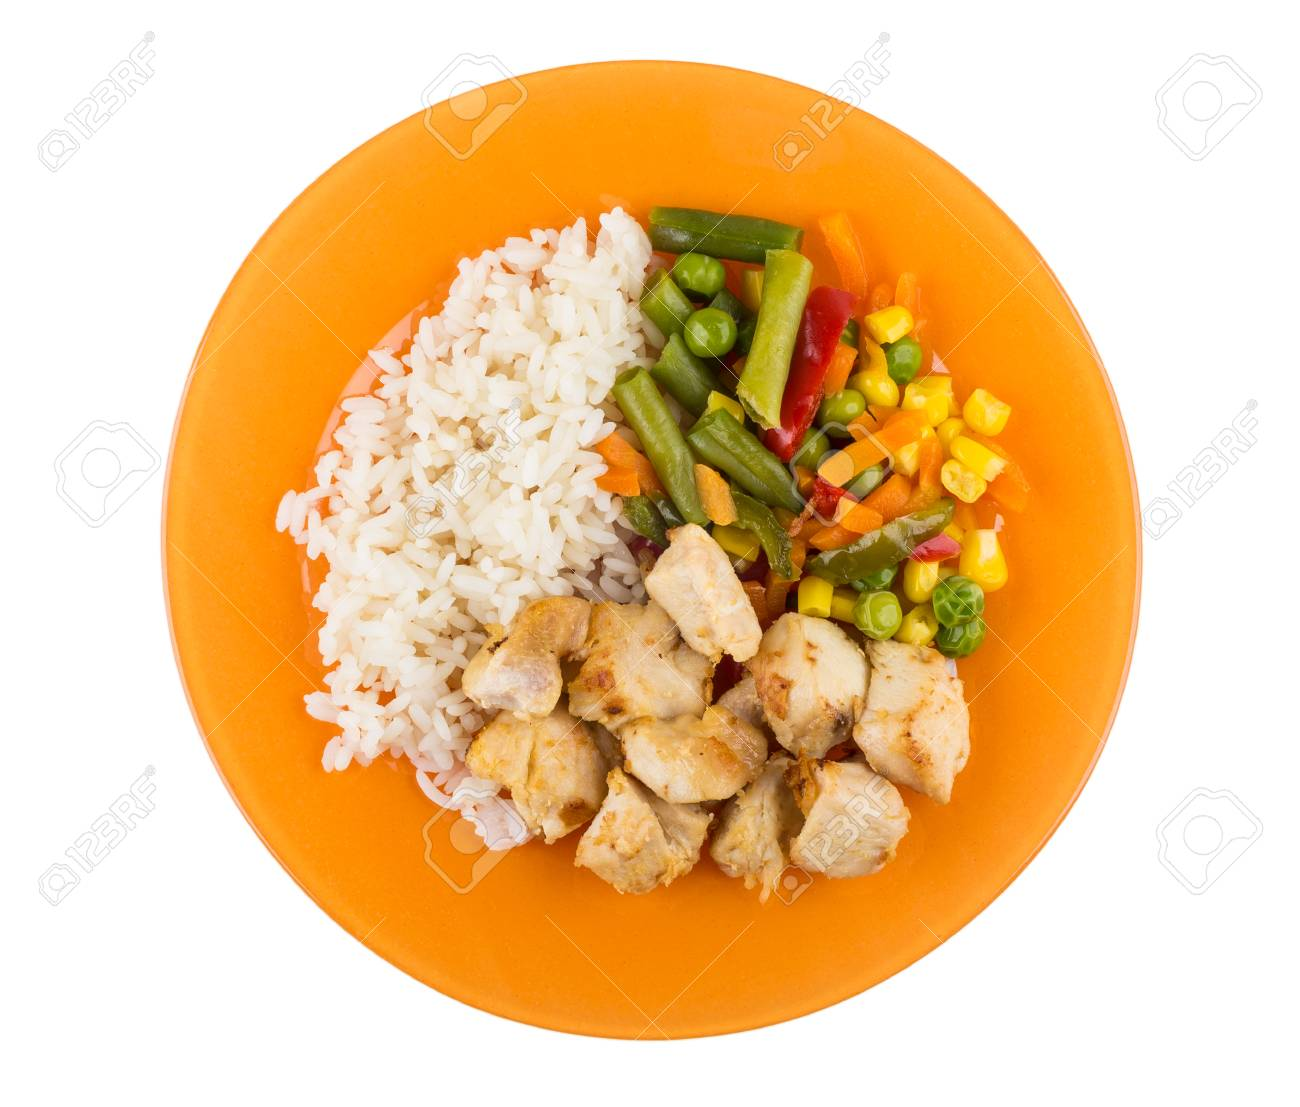 Fried Chicken Meat With Rice And Vegetable Mix On Orange Plate